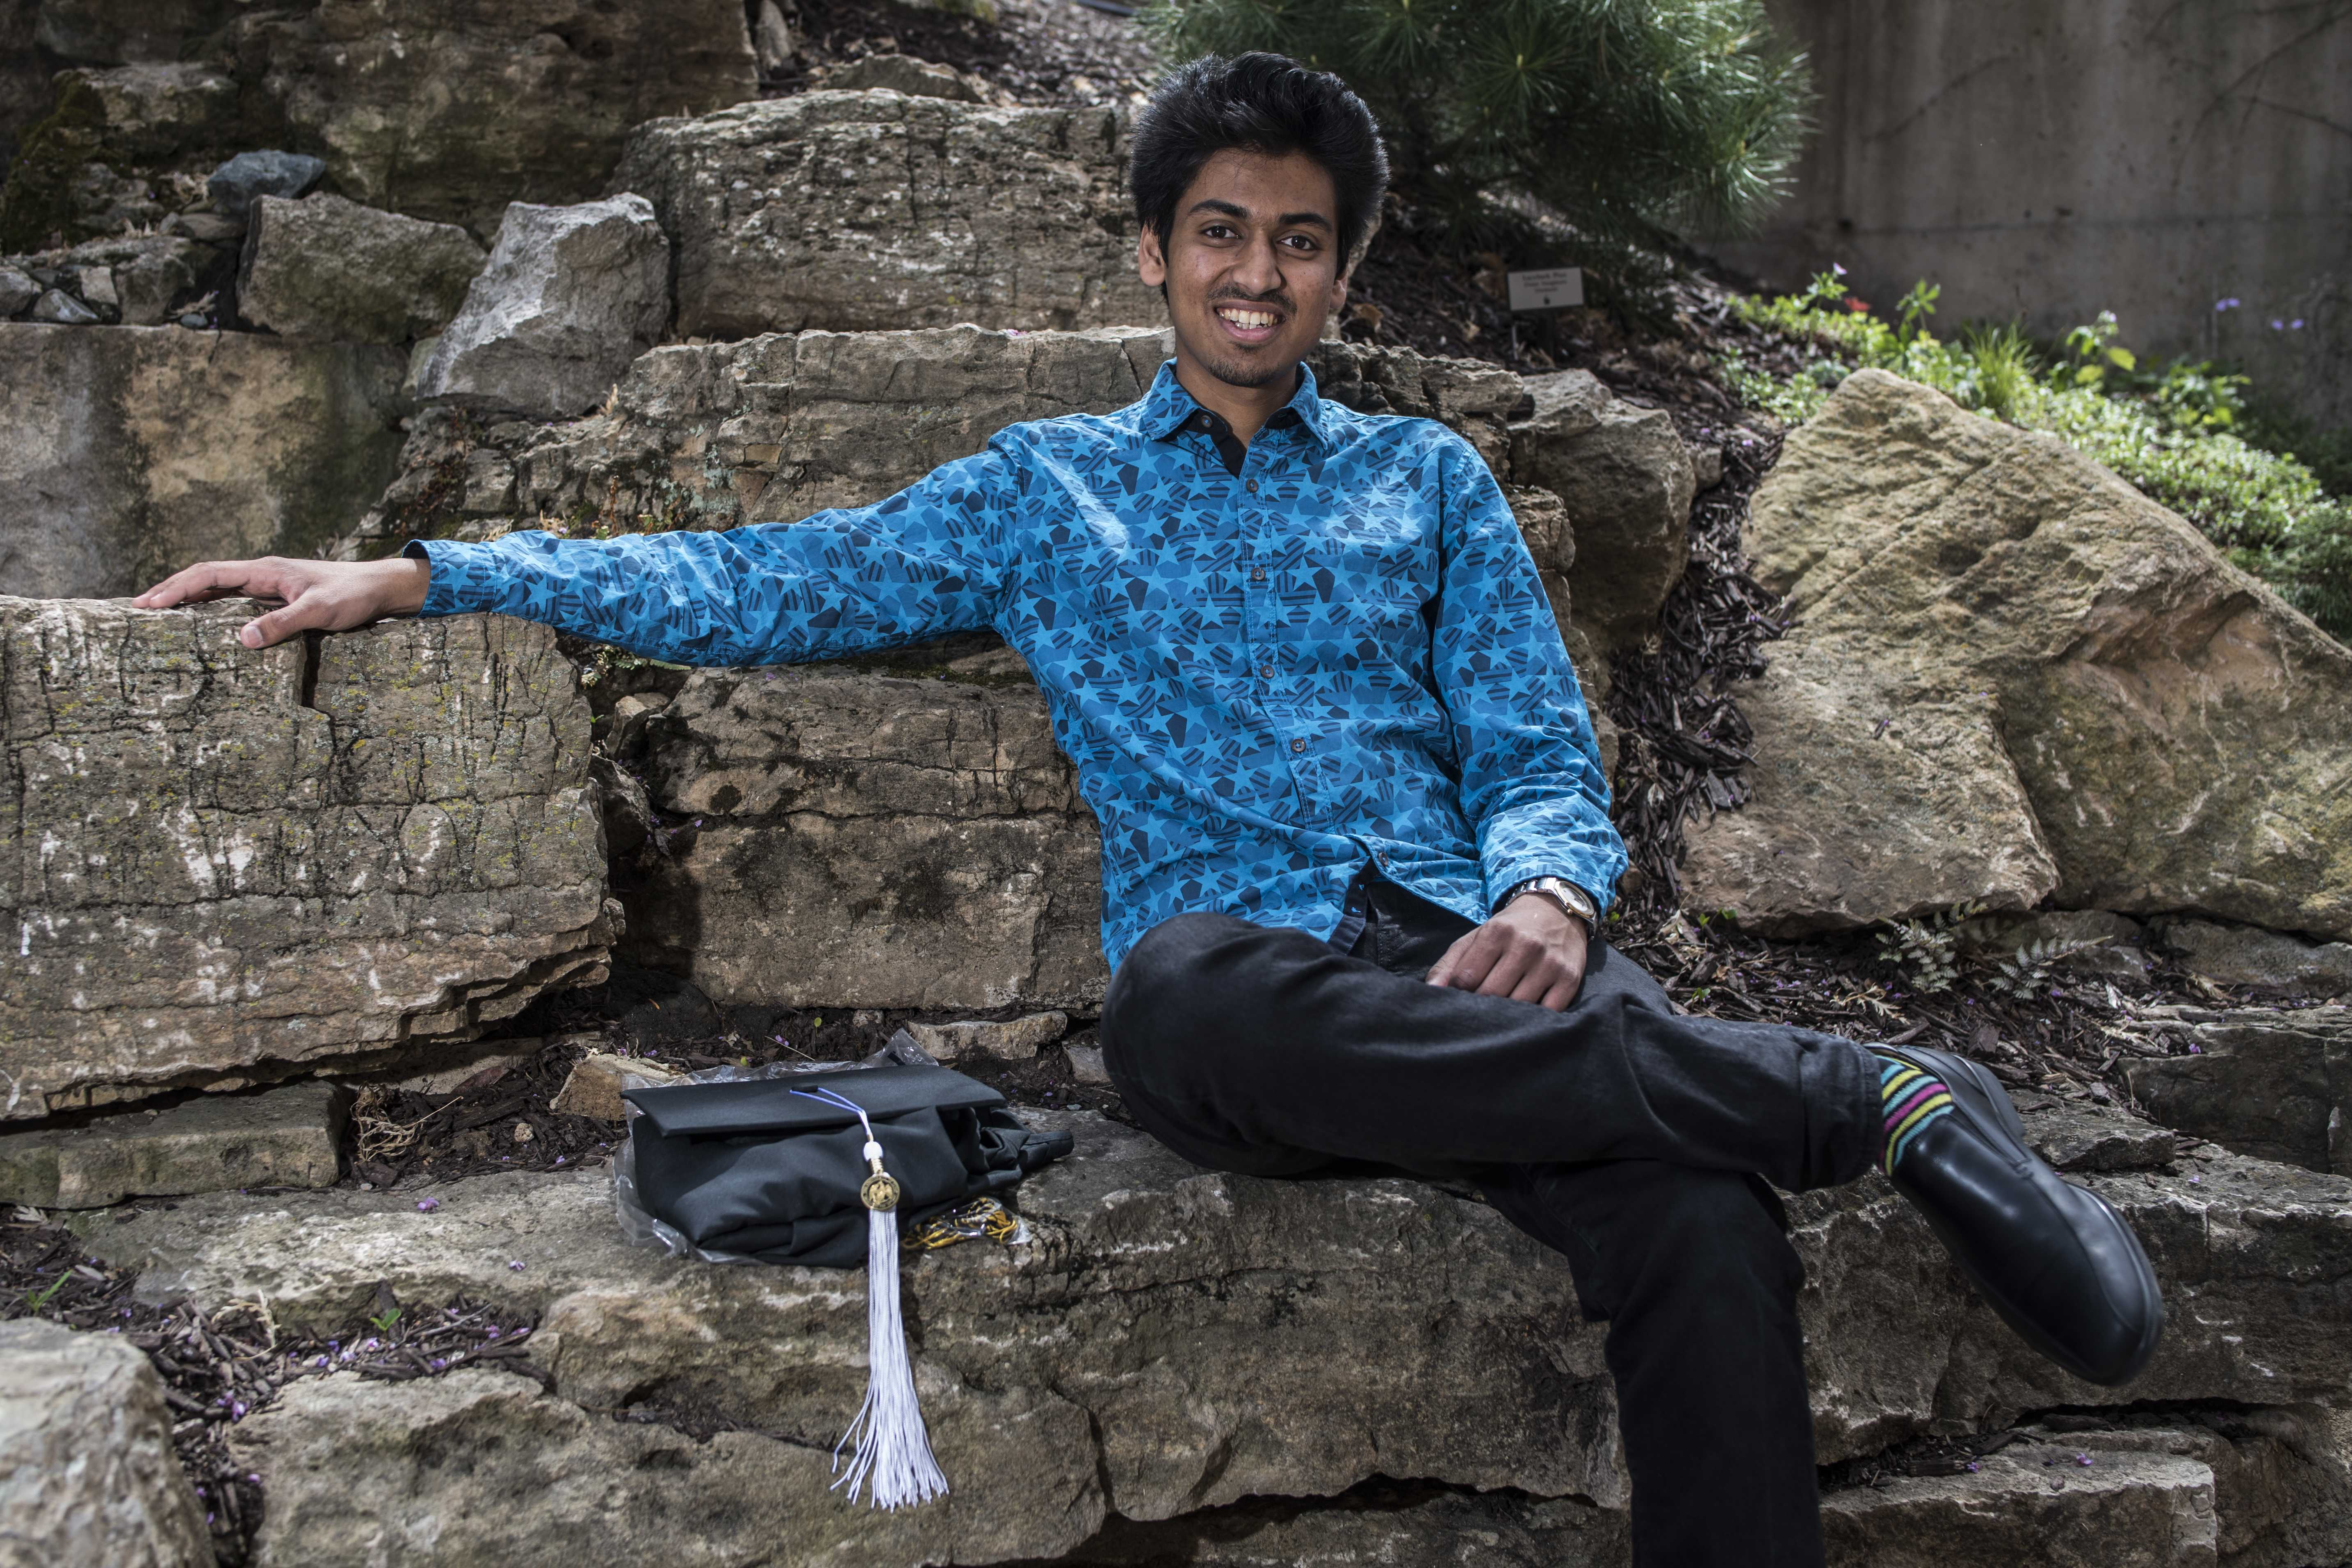 UI senior Akash Bhalerao poses for a portrait in the Dancer's Garden on Tuesday, May 8. Bhalerao is graduating with degrees in both social entrepreneurship and environmental restoration. (Ben Allan Smith/The Daily Iowan)